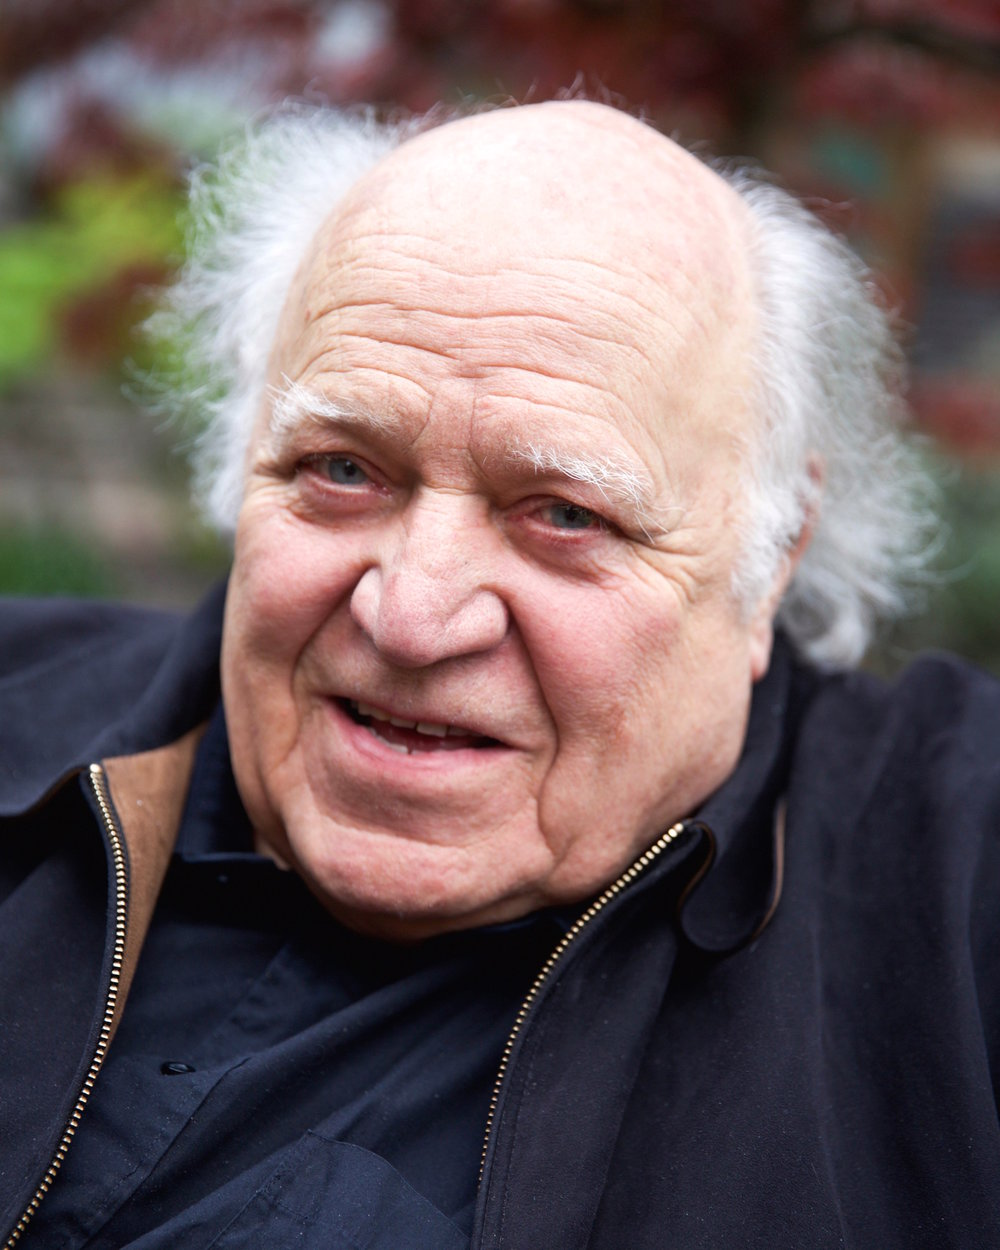 Leslie Hardcastle OBE  Honorary President  Retired Controller of the British Film Institute, South Bank. A founder member of both The Soho Society and Soho Housing and a Soho Resident.